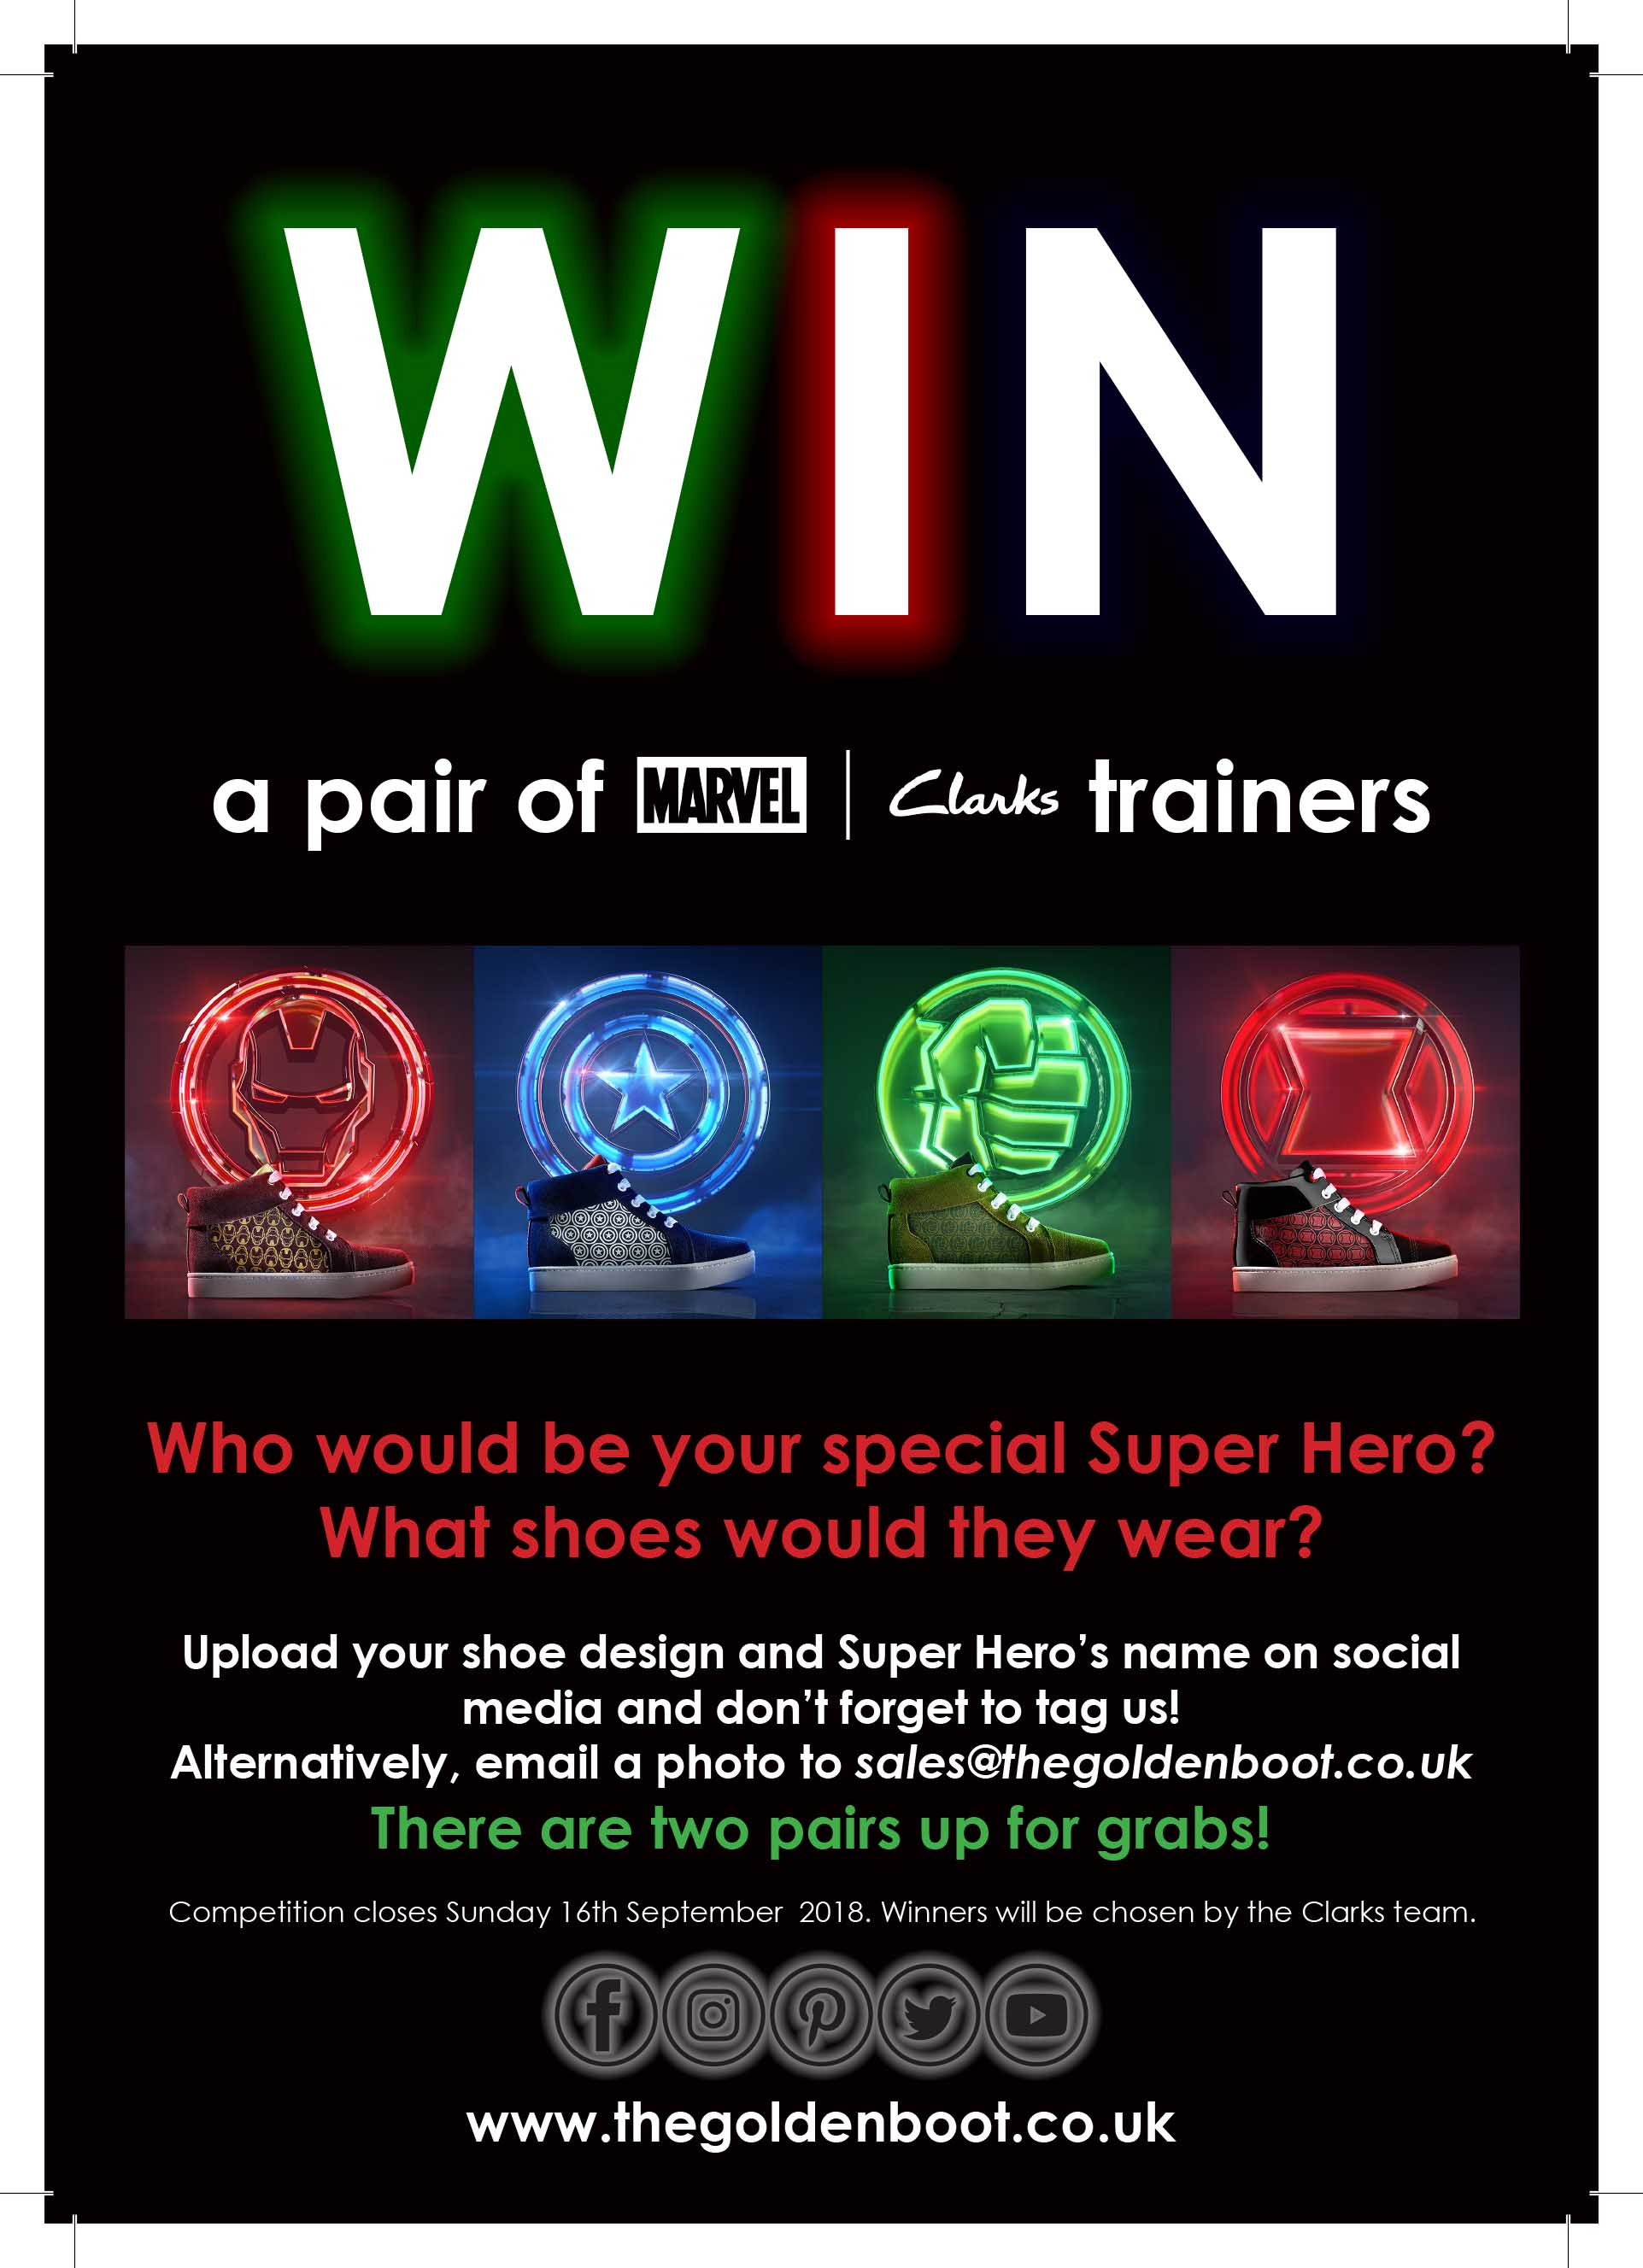 Enter our Facebook competition to win a pair of Marvel X Clarks Trainers